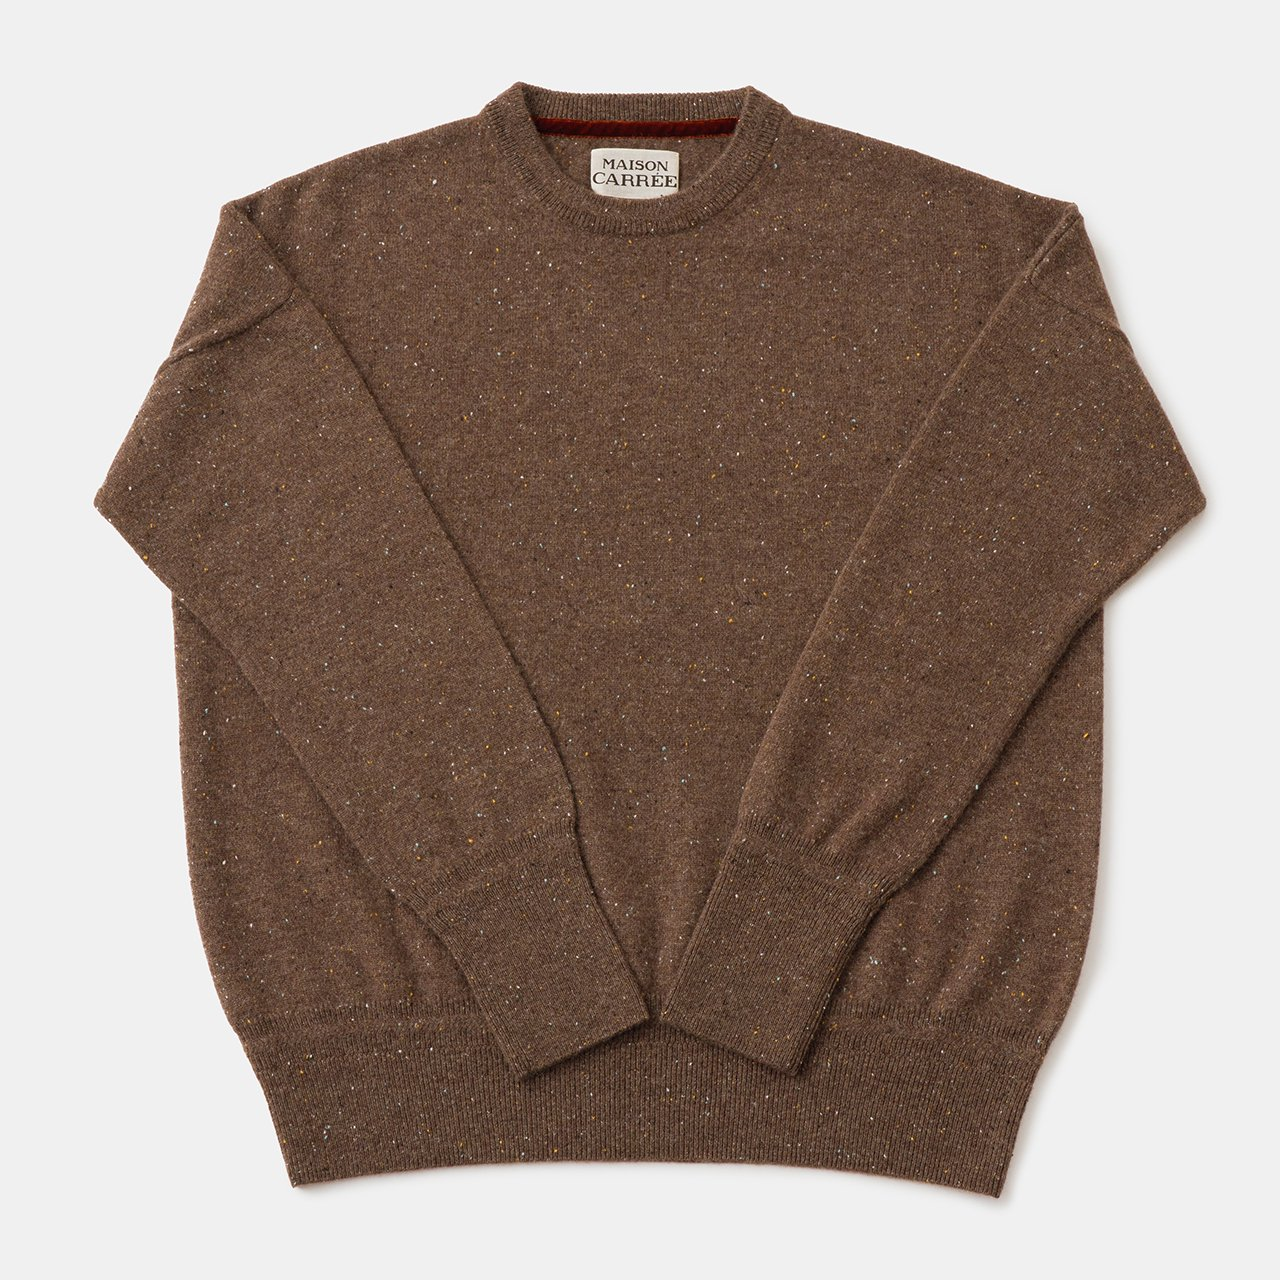 CASHMERE Basic Tops<BR>STARDUST BROWN